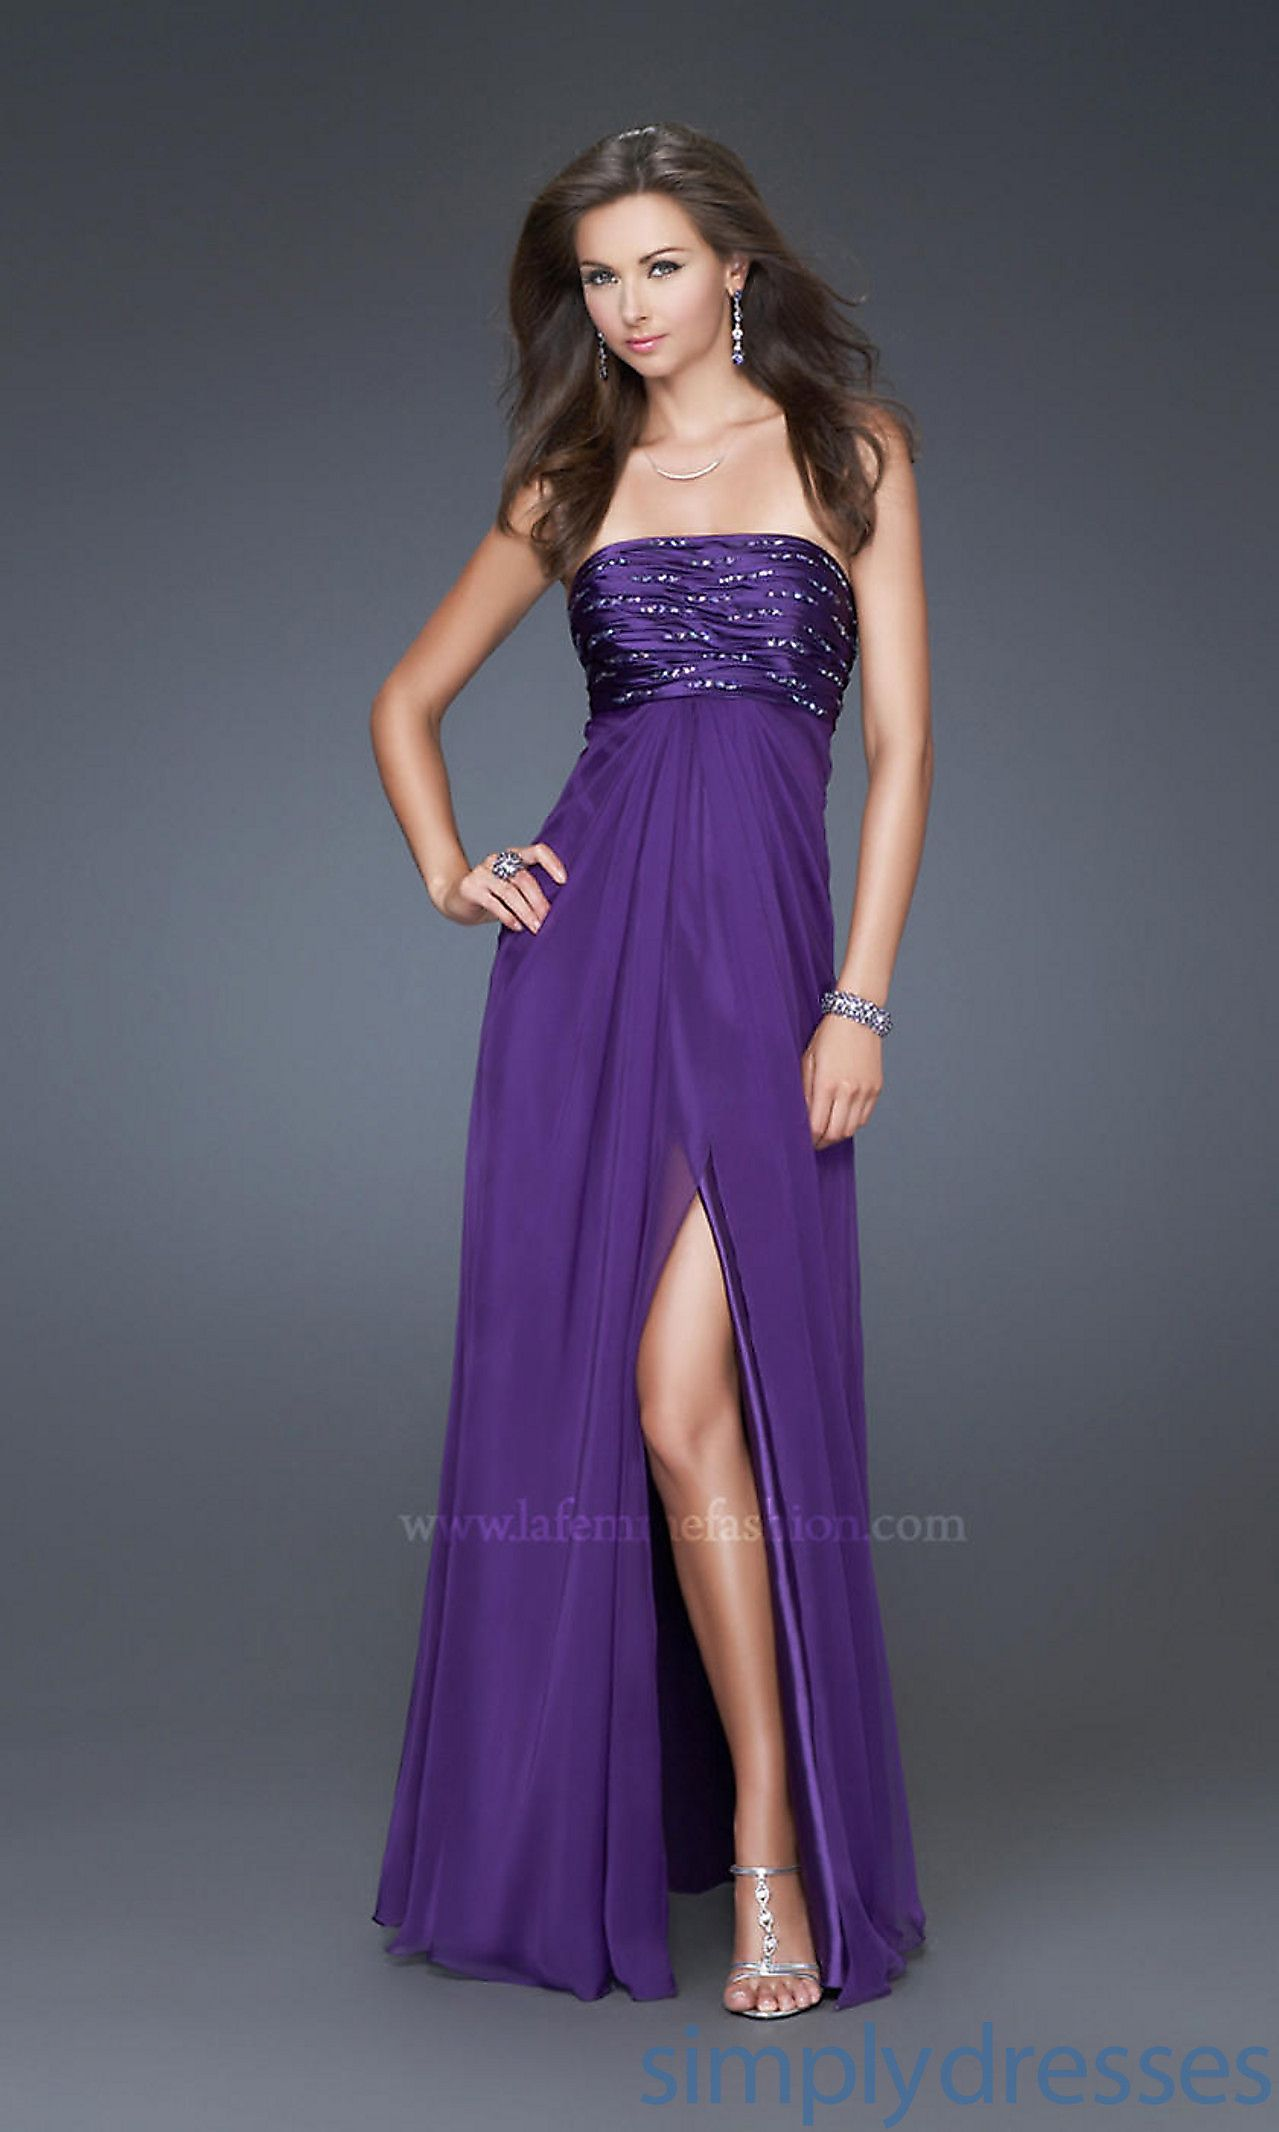 Pretty purple dress! And might cover my not so flat mommy tummy ...